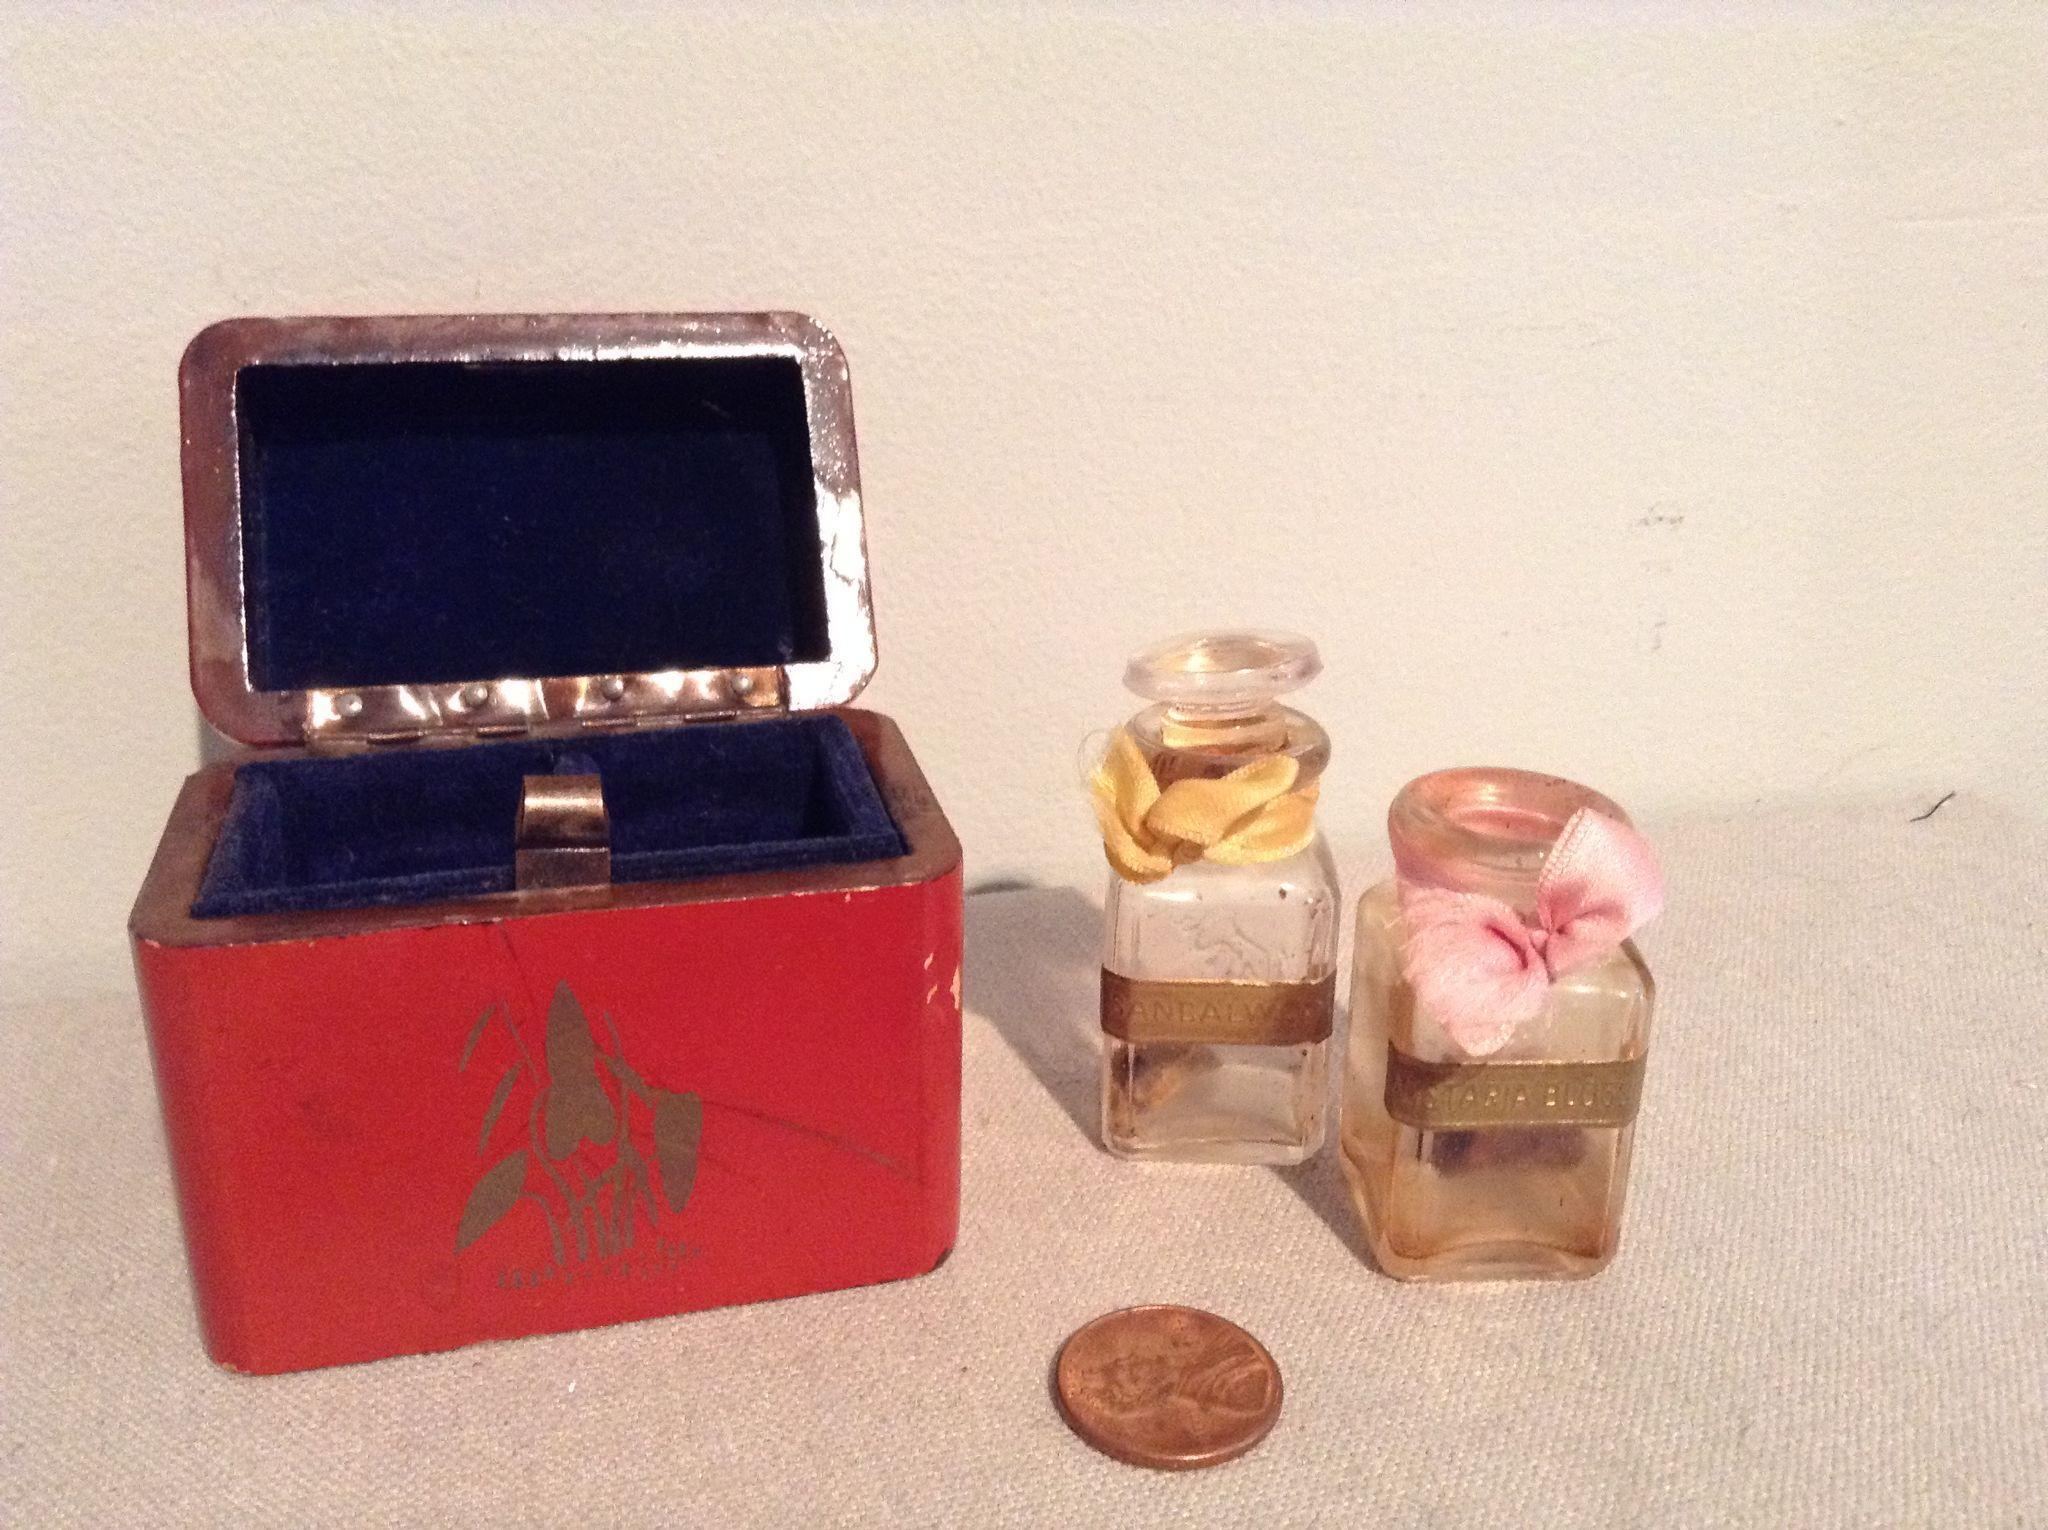 Petite Japanese Red Lacquered Box and Perfumes Vials for French fashion